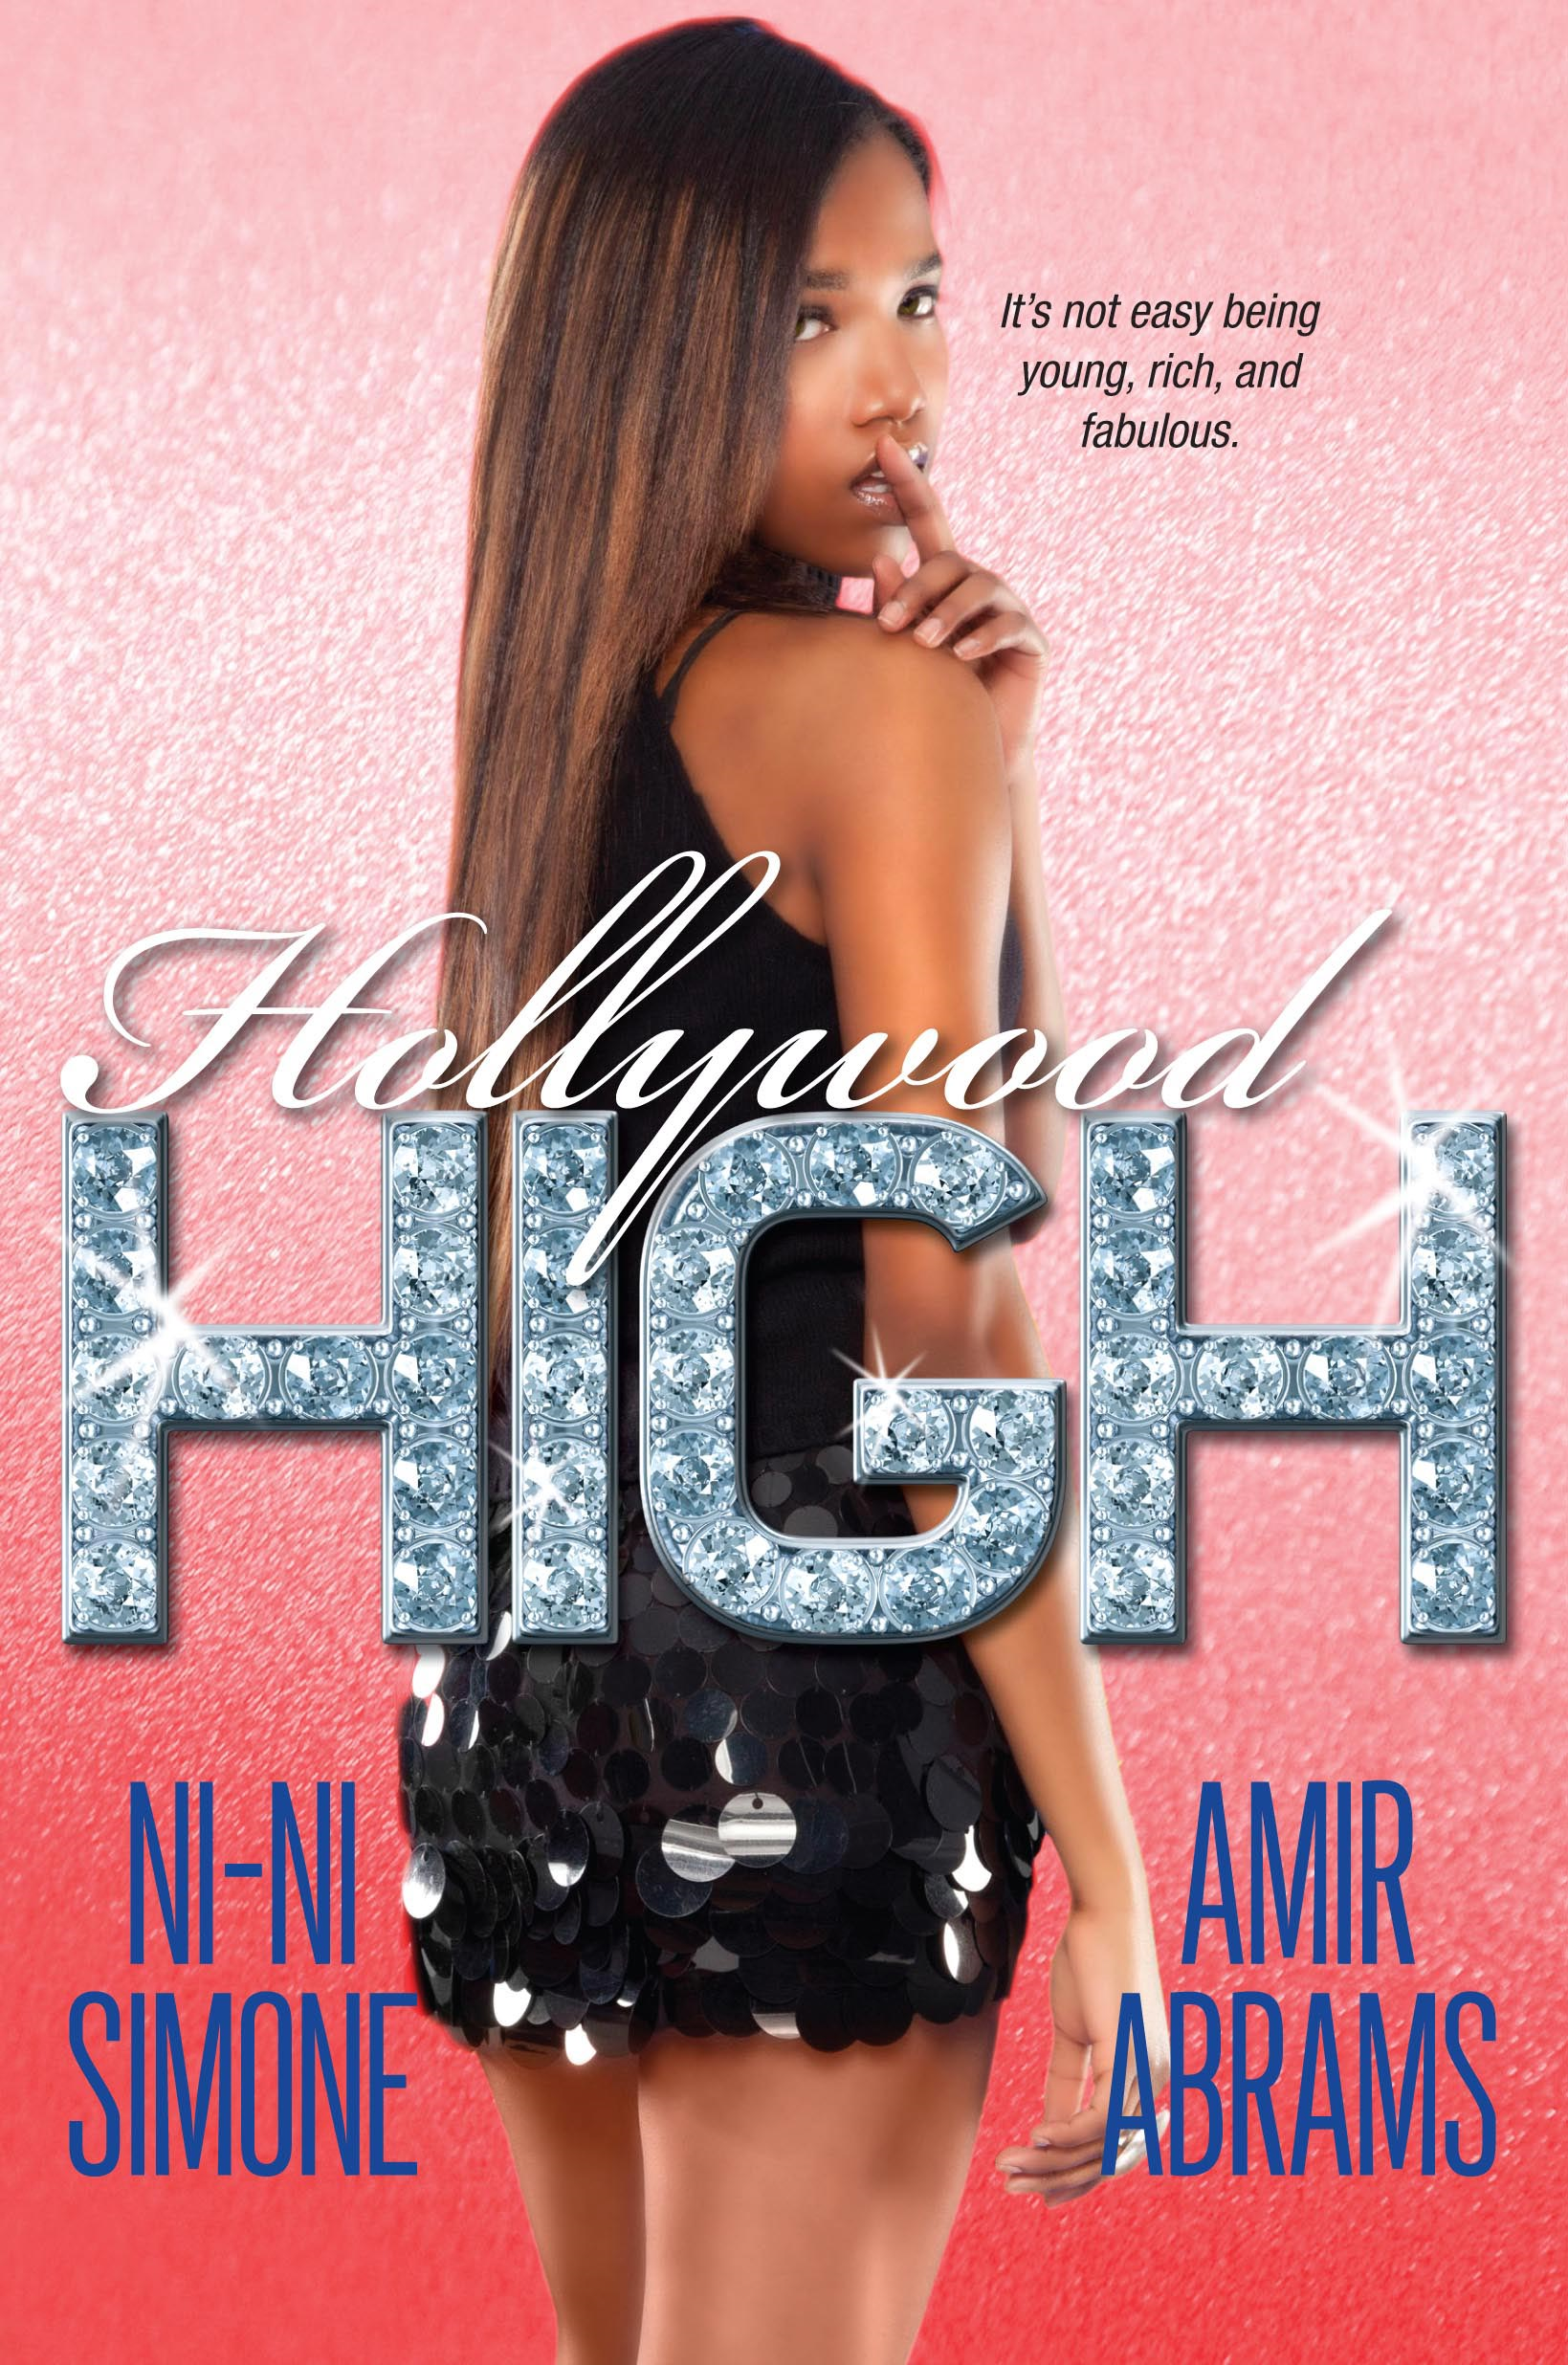 Hollywood High By: Amir Abrams,Ni-Ni Simone